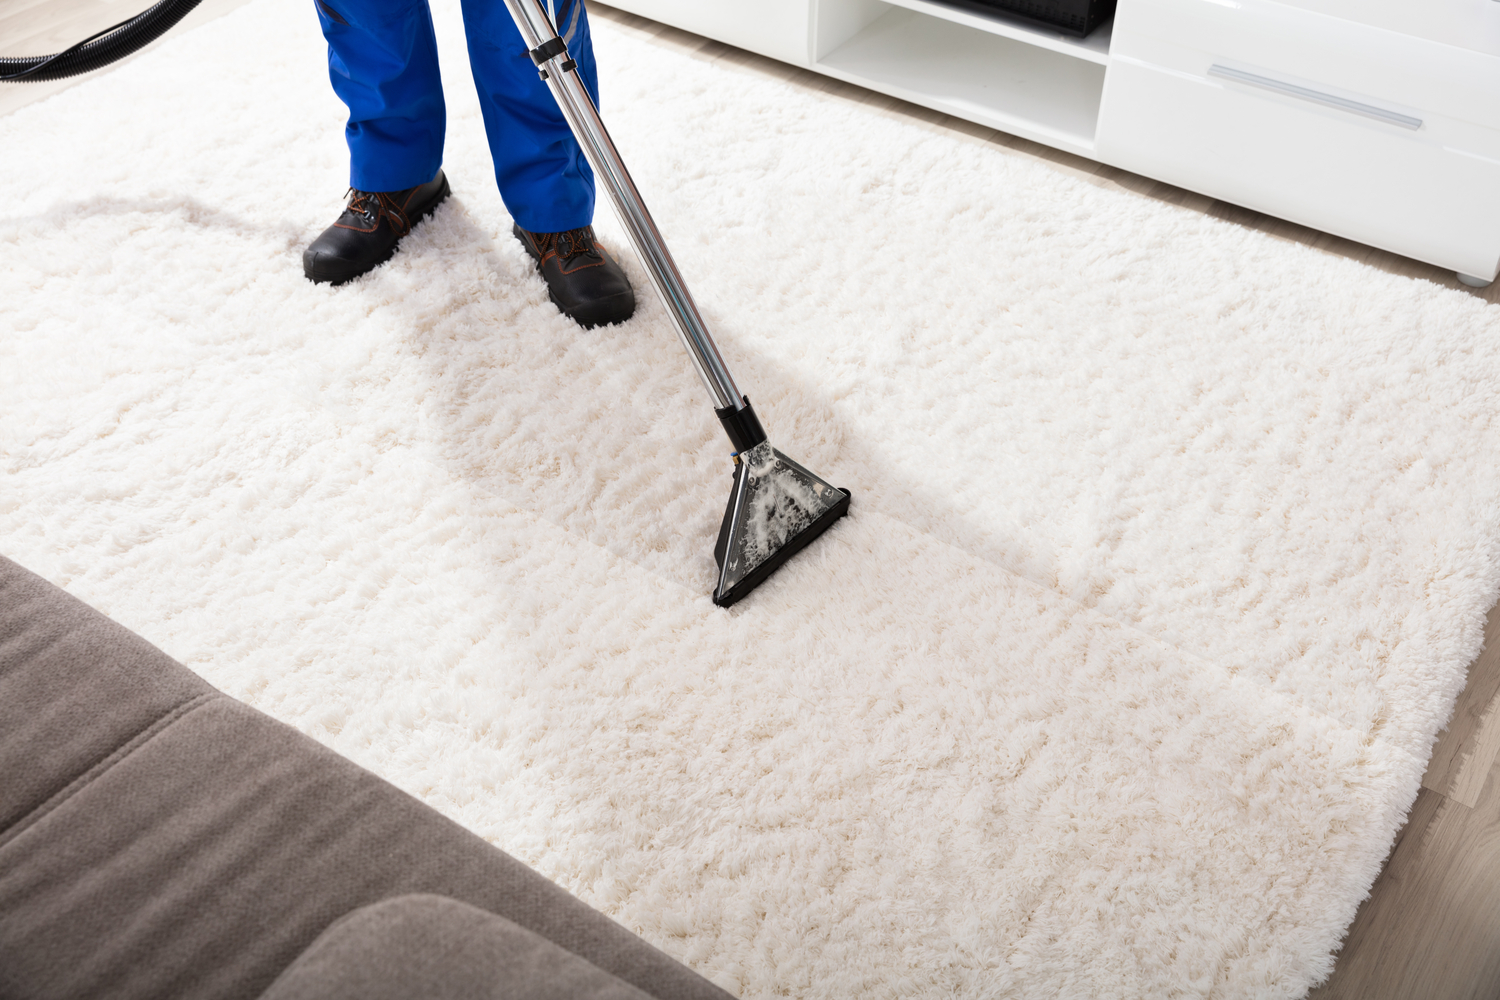 Carpet Cleaning Service Guaranteed One Minute Dry Time